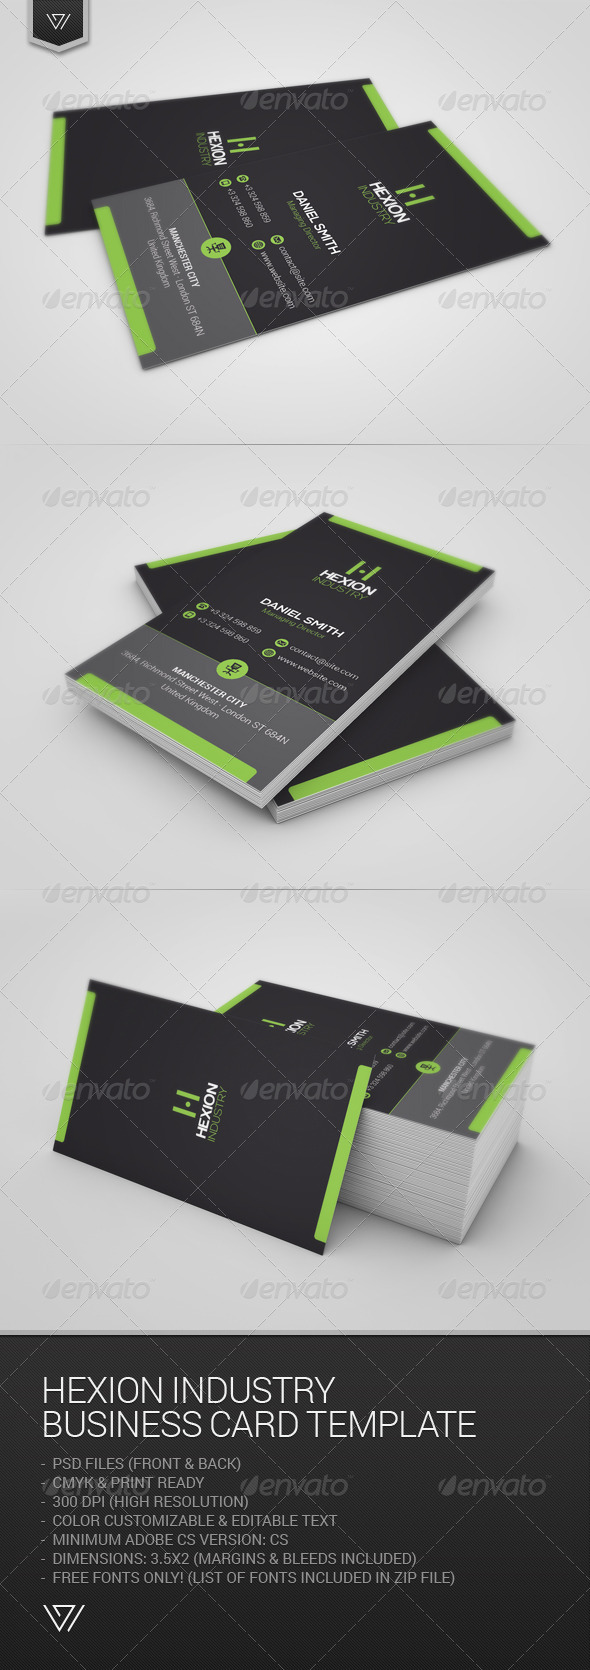 GraphicRiver Hexion Industry Business Card 7663980